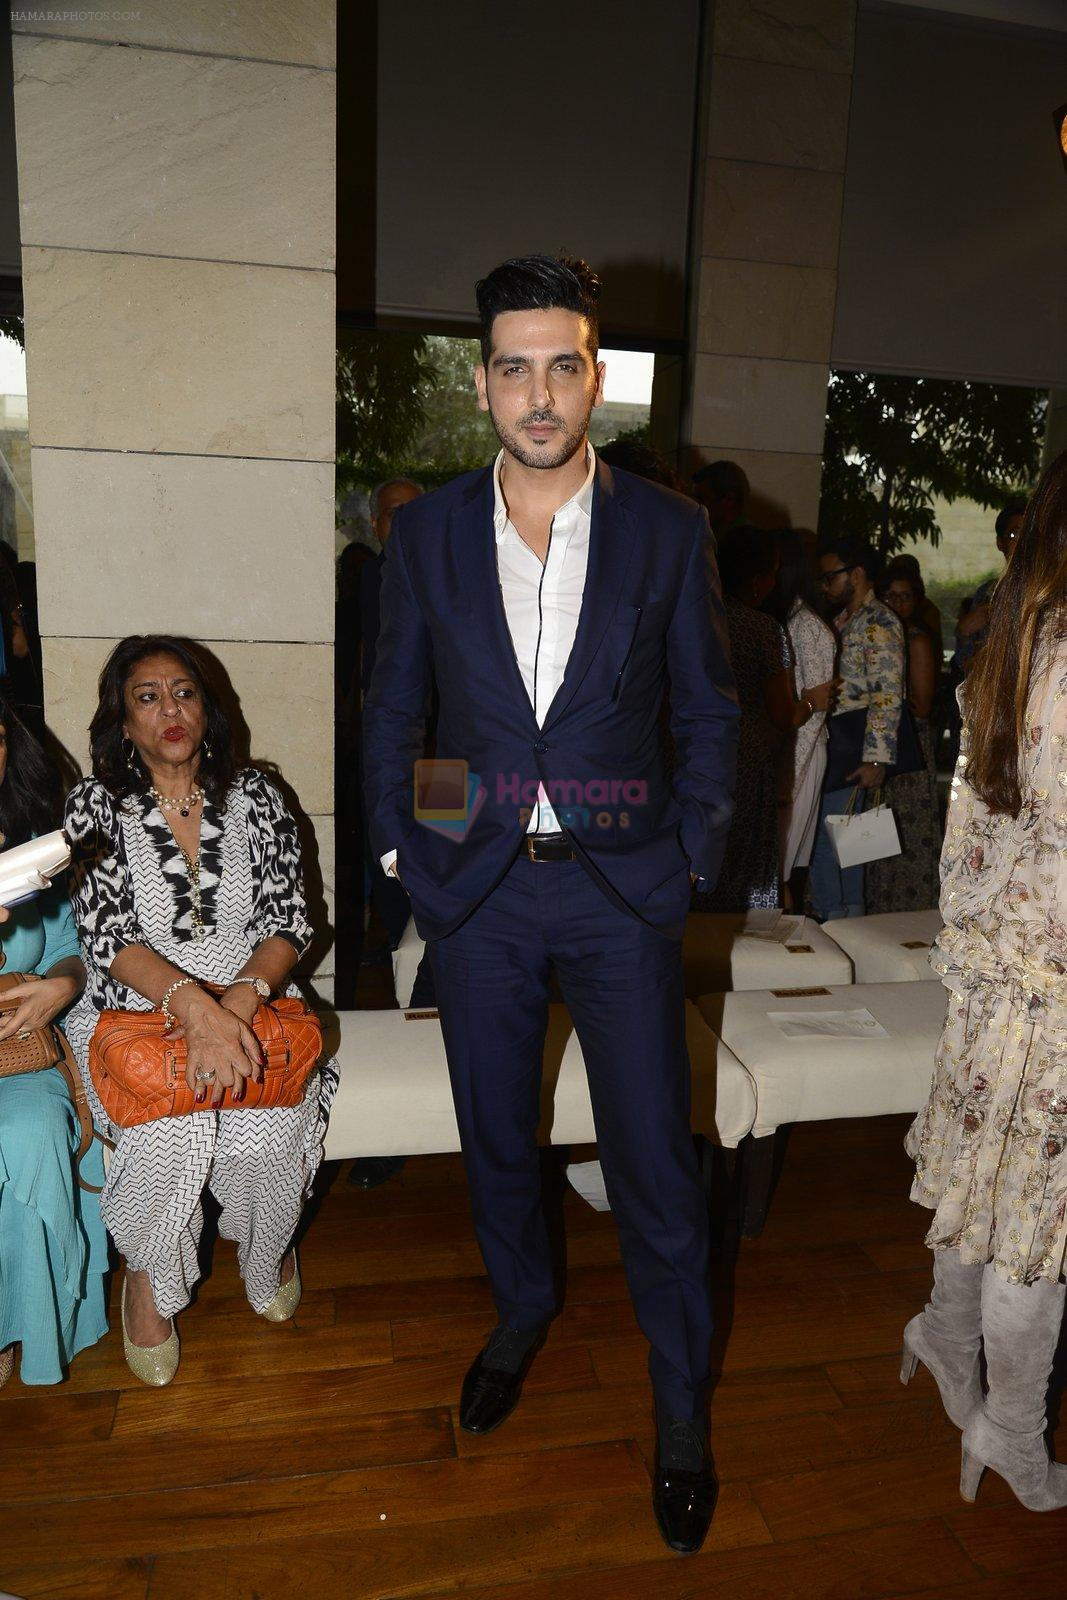 Zayed Khan during Manav Gangwani latest collection Begum-e-Jannat at the FDCI India Couture Week 2016 on 24 July 2016